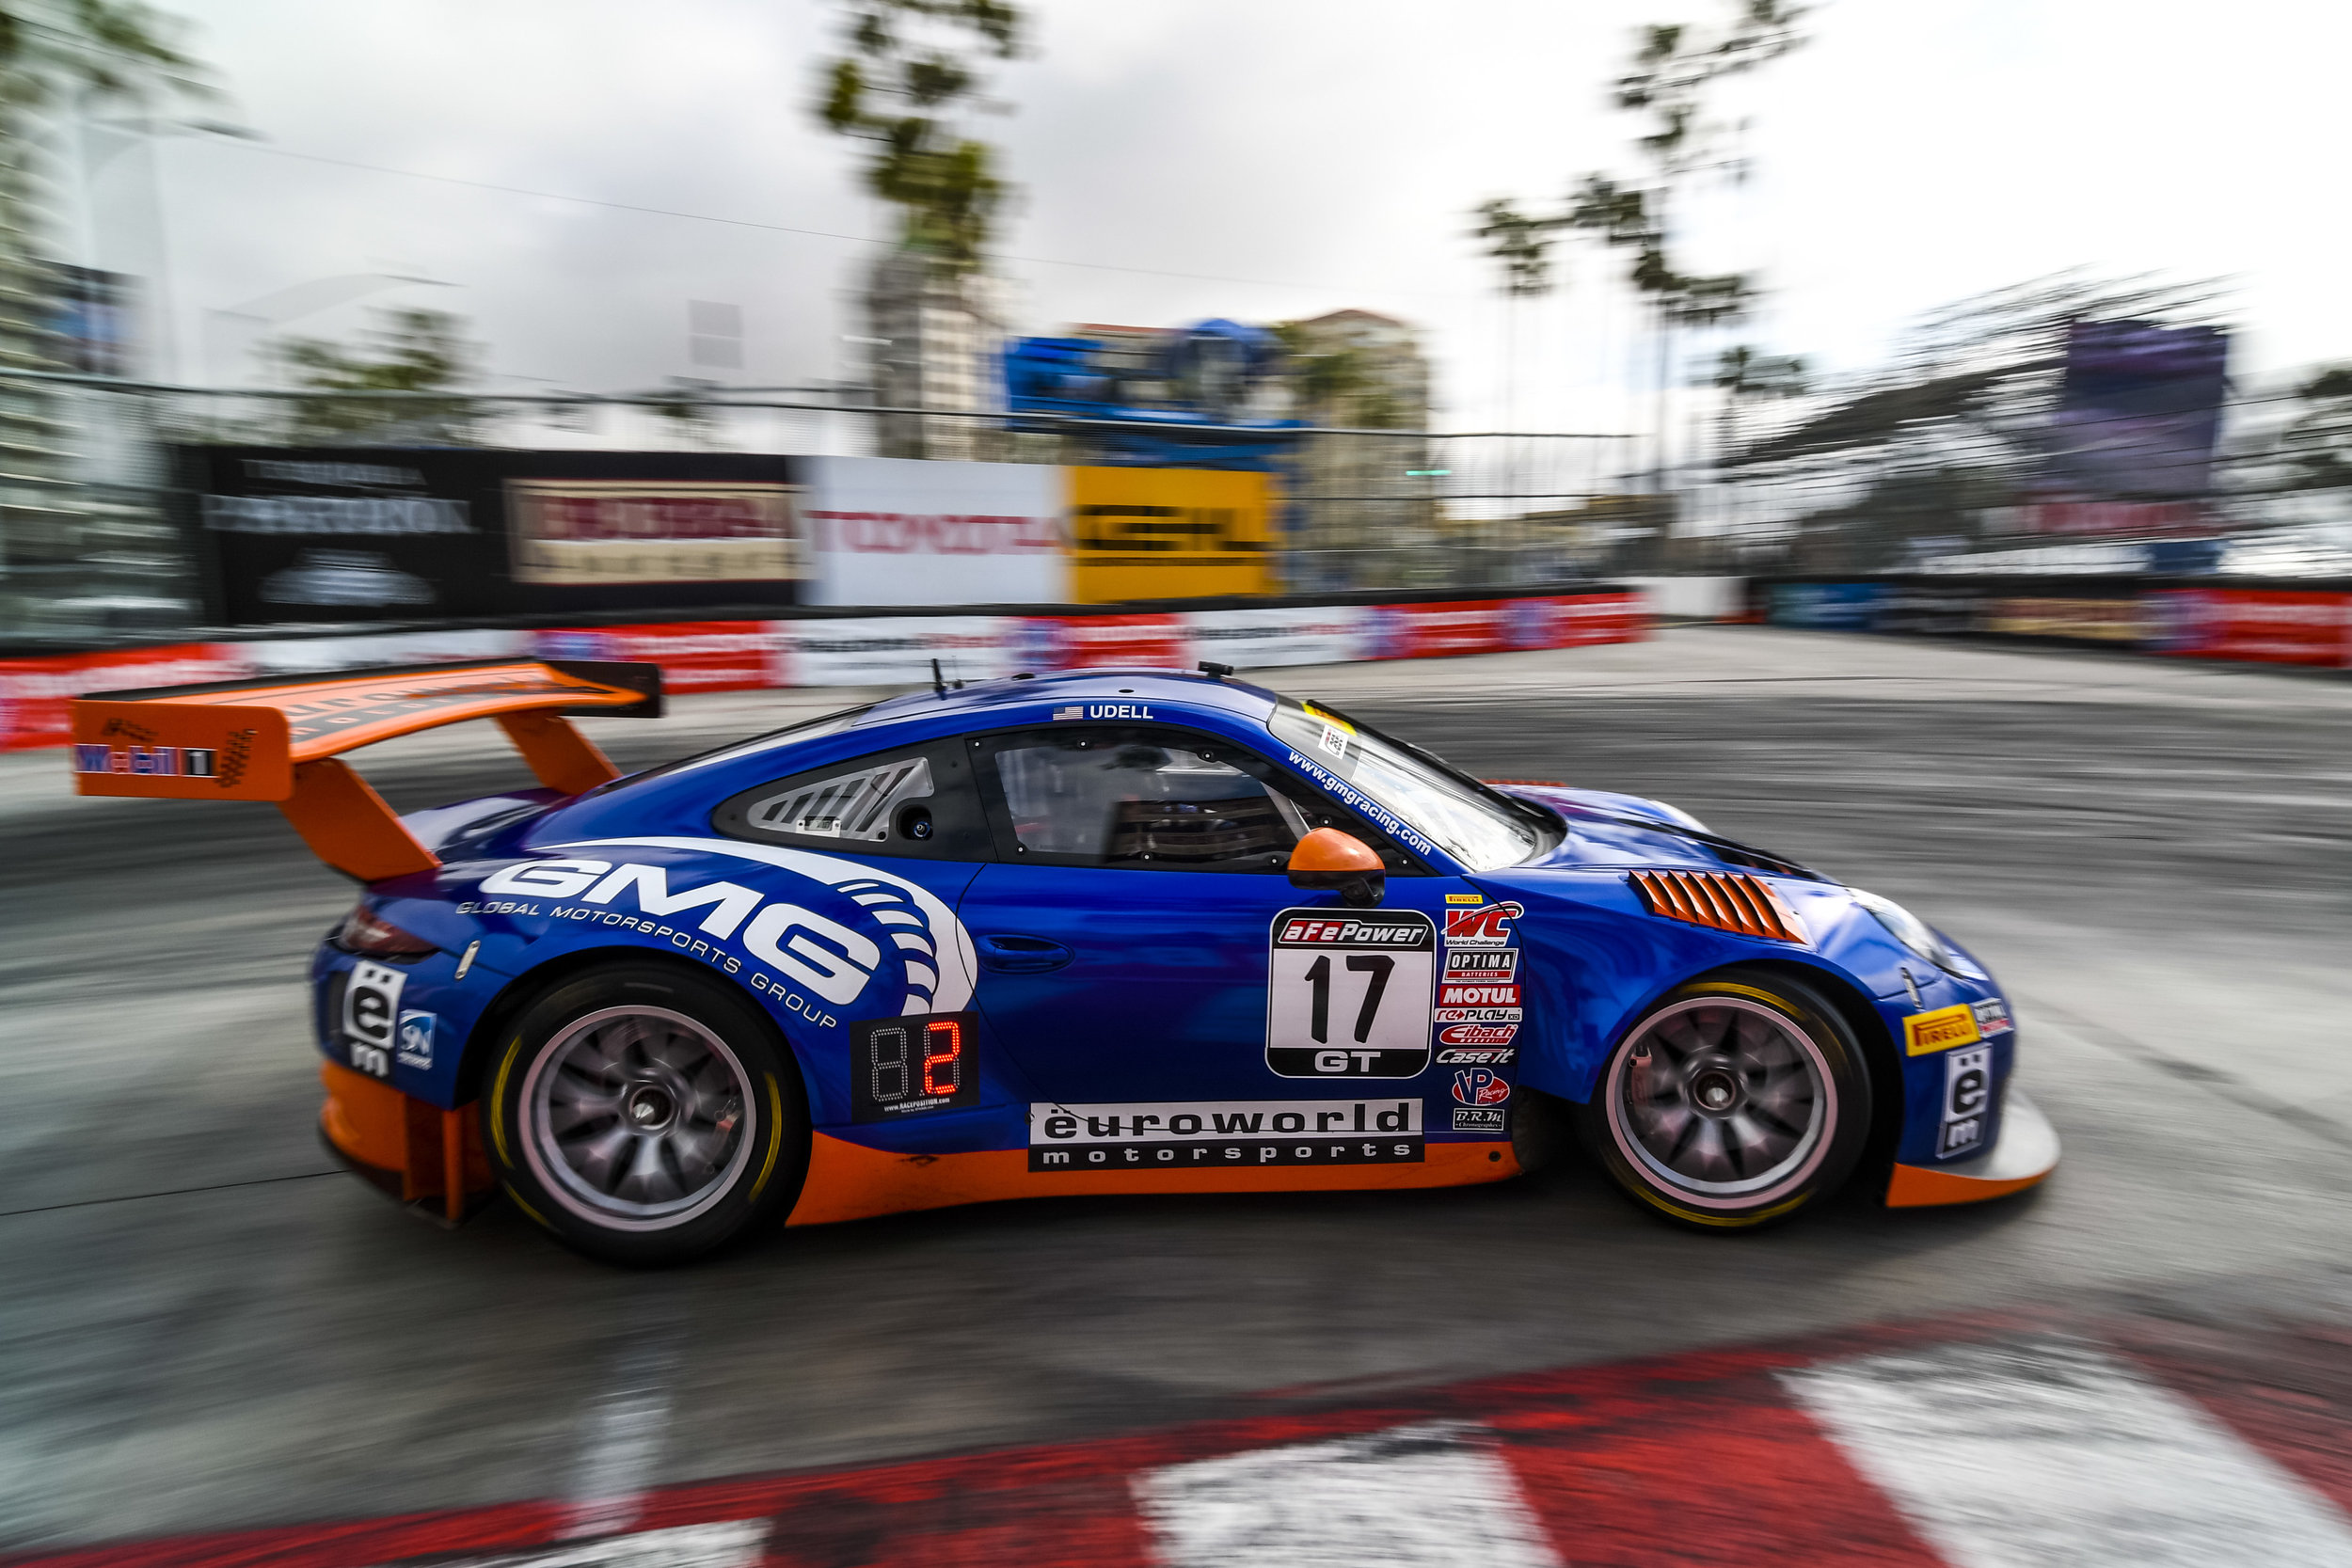 2017- Long Beach- Alec Udell in the Long Beach Hairpin. Image courtesy of PCNA.